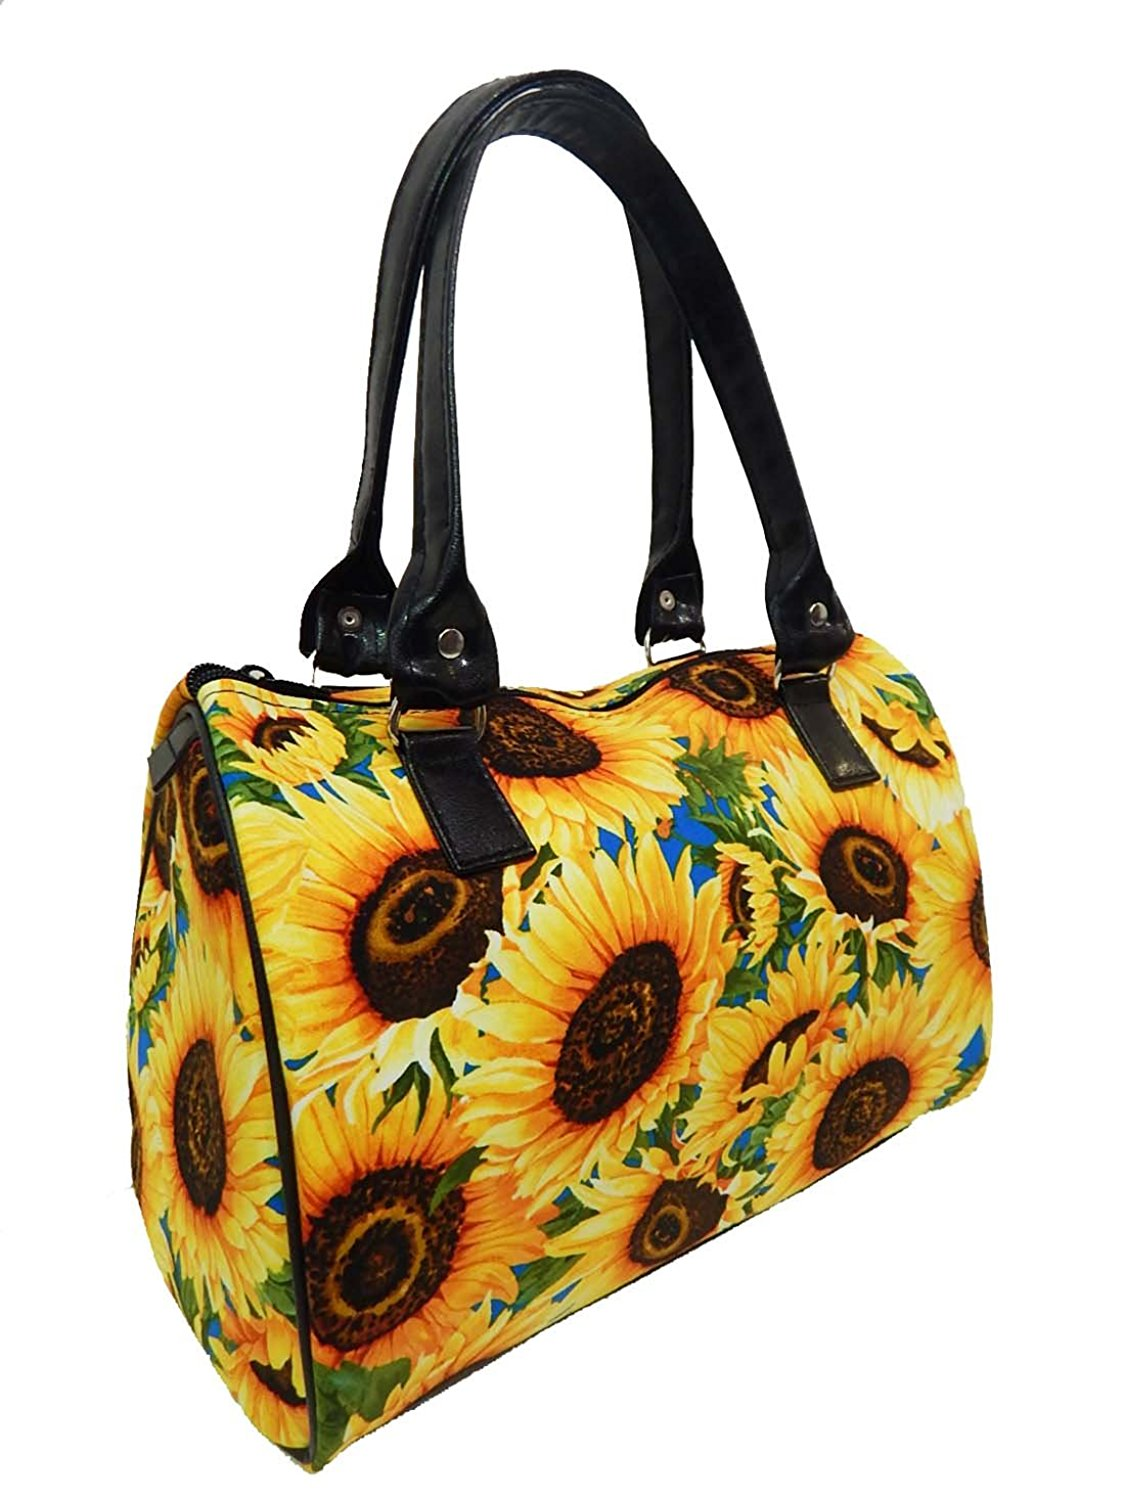 Cheap Doctor Bag Style Find Deals On Line At Bowling Handbag Get Quotations Us Handmade Fashion Sunflowers Pattern Satchel Cotton New